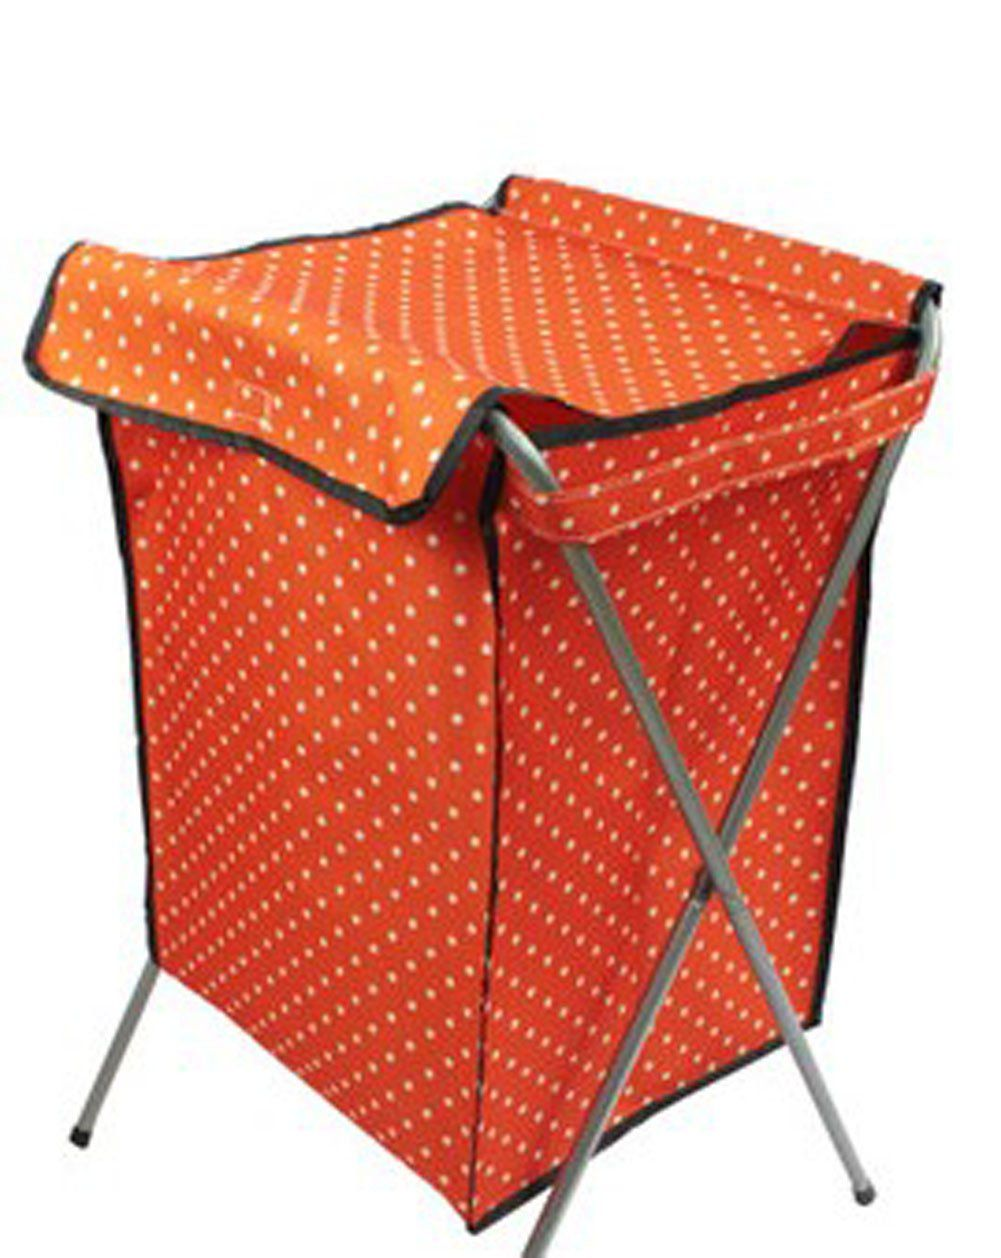 Household Essentials Foldable Laundry Basket With A Cover 66 40 35cm Orange Products Laundry Basket Laundry Laundry Storage